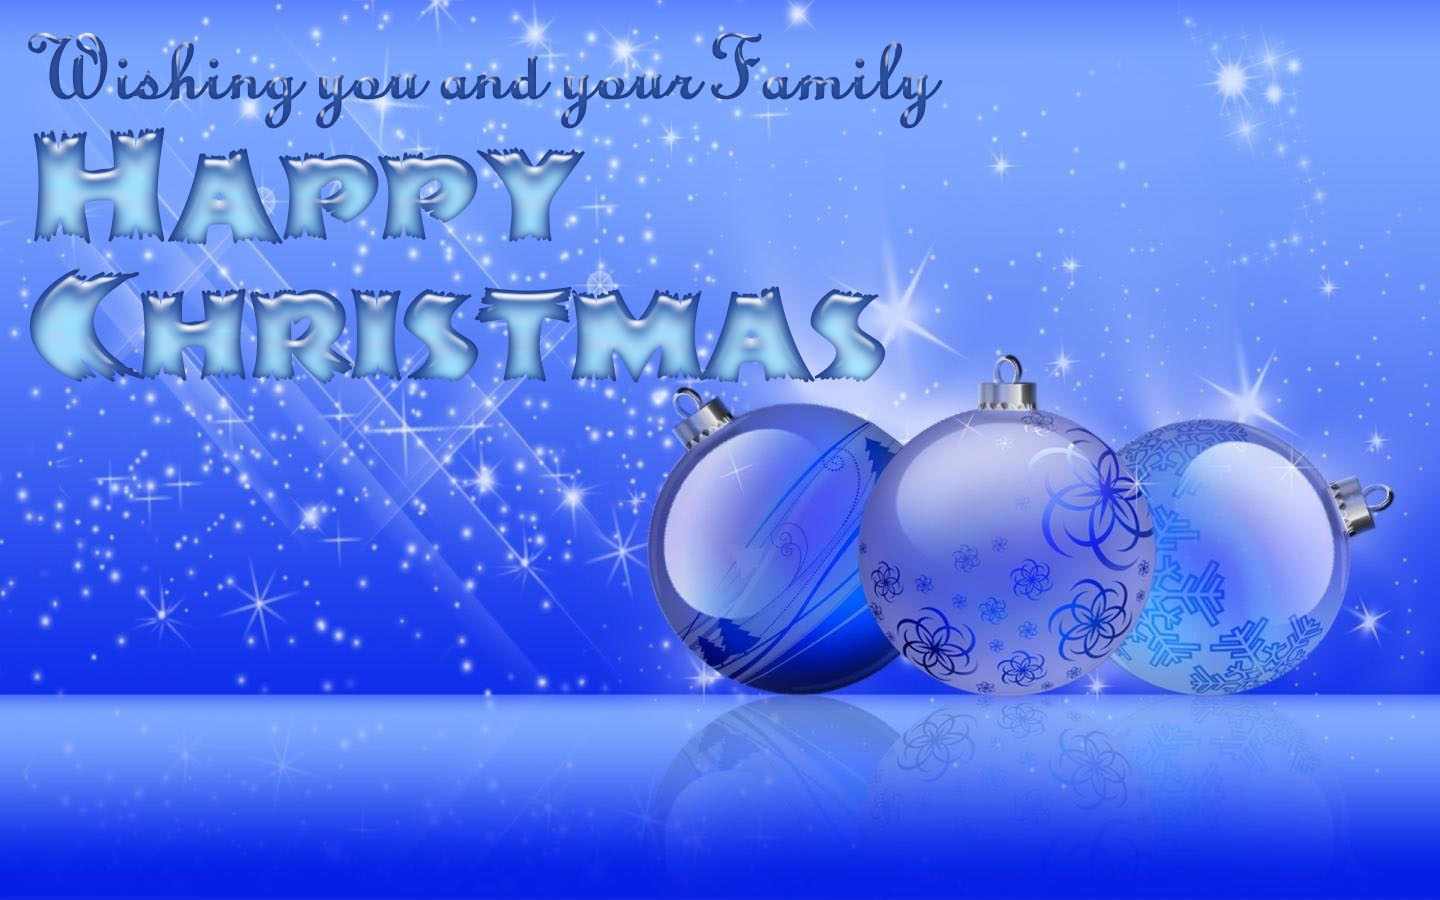 wallpaper proslut: Family Christmas Greetings e Cards Online.